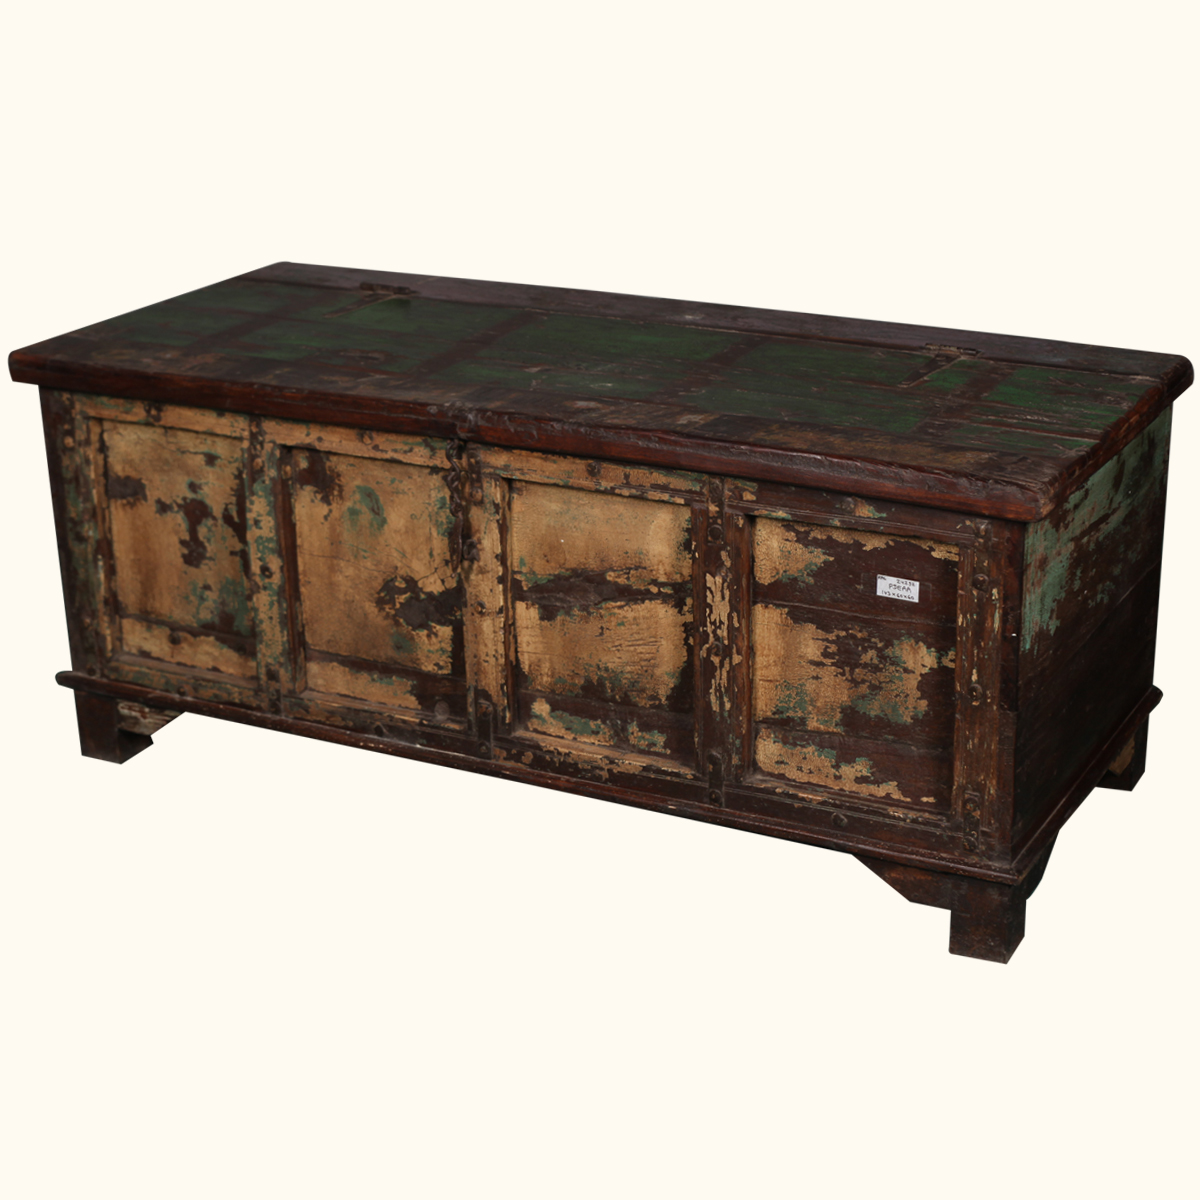 Storage box coffee table rustic distressed reclaimed wood - Trunk style coffee tables ...